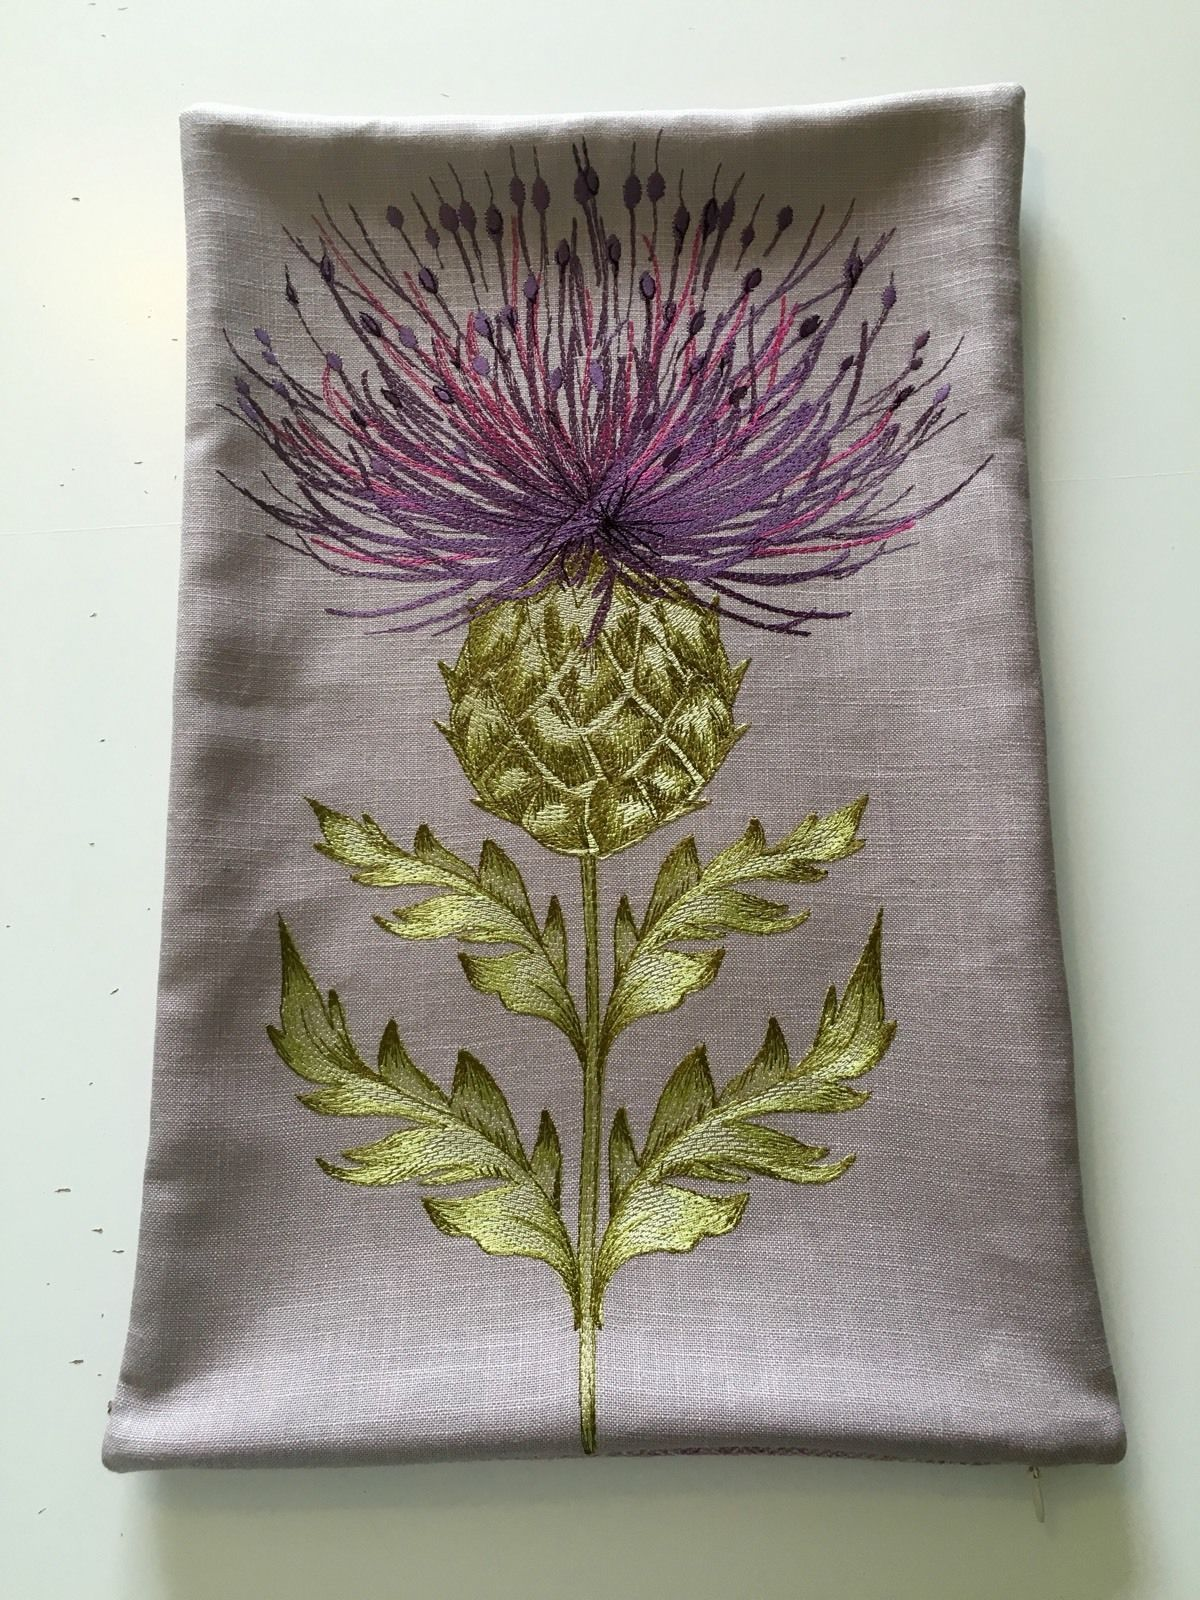 """Handmade Embroidered Thistle Cushion Cover - Purple FOR SALE • £27.50 • See Photos! Money Back Guarantee. Embroidered Thistle Cushion Covers with 100% wool backing. Rectangular 11""""x 18"""" Cushion cover. (12""""x20"""" feather cushion pad recommended for this cover) Concealed zip. Handmade to order. Made by 'Mini Cottage 131996412165"""